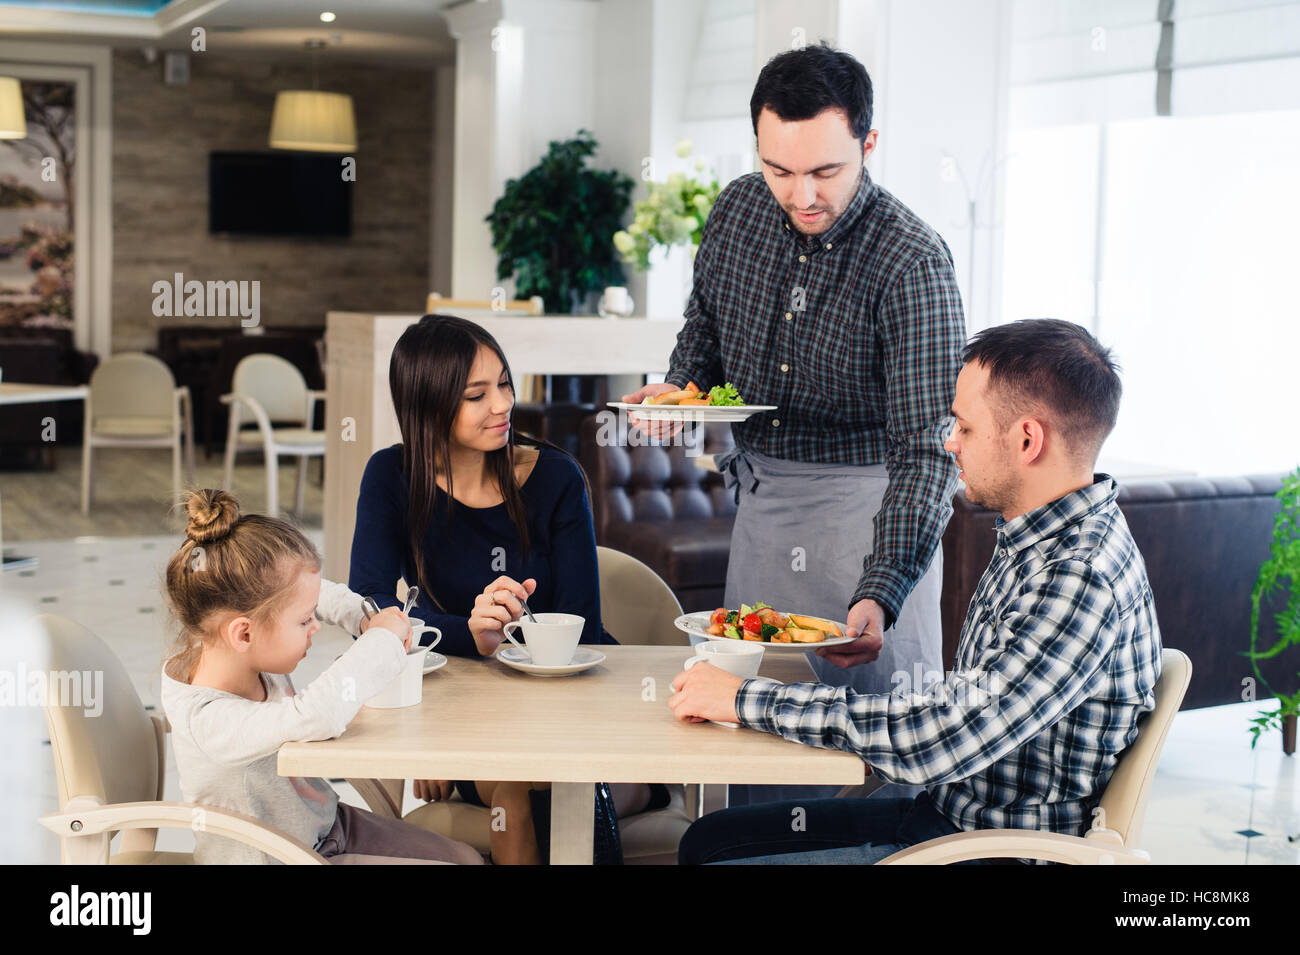 waiter serving food restaurant stock photos waiter serving food